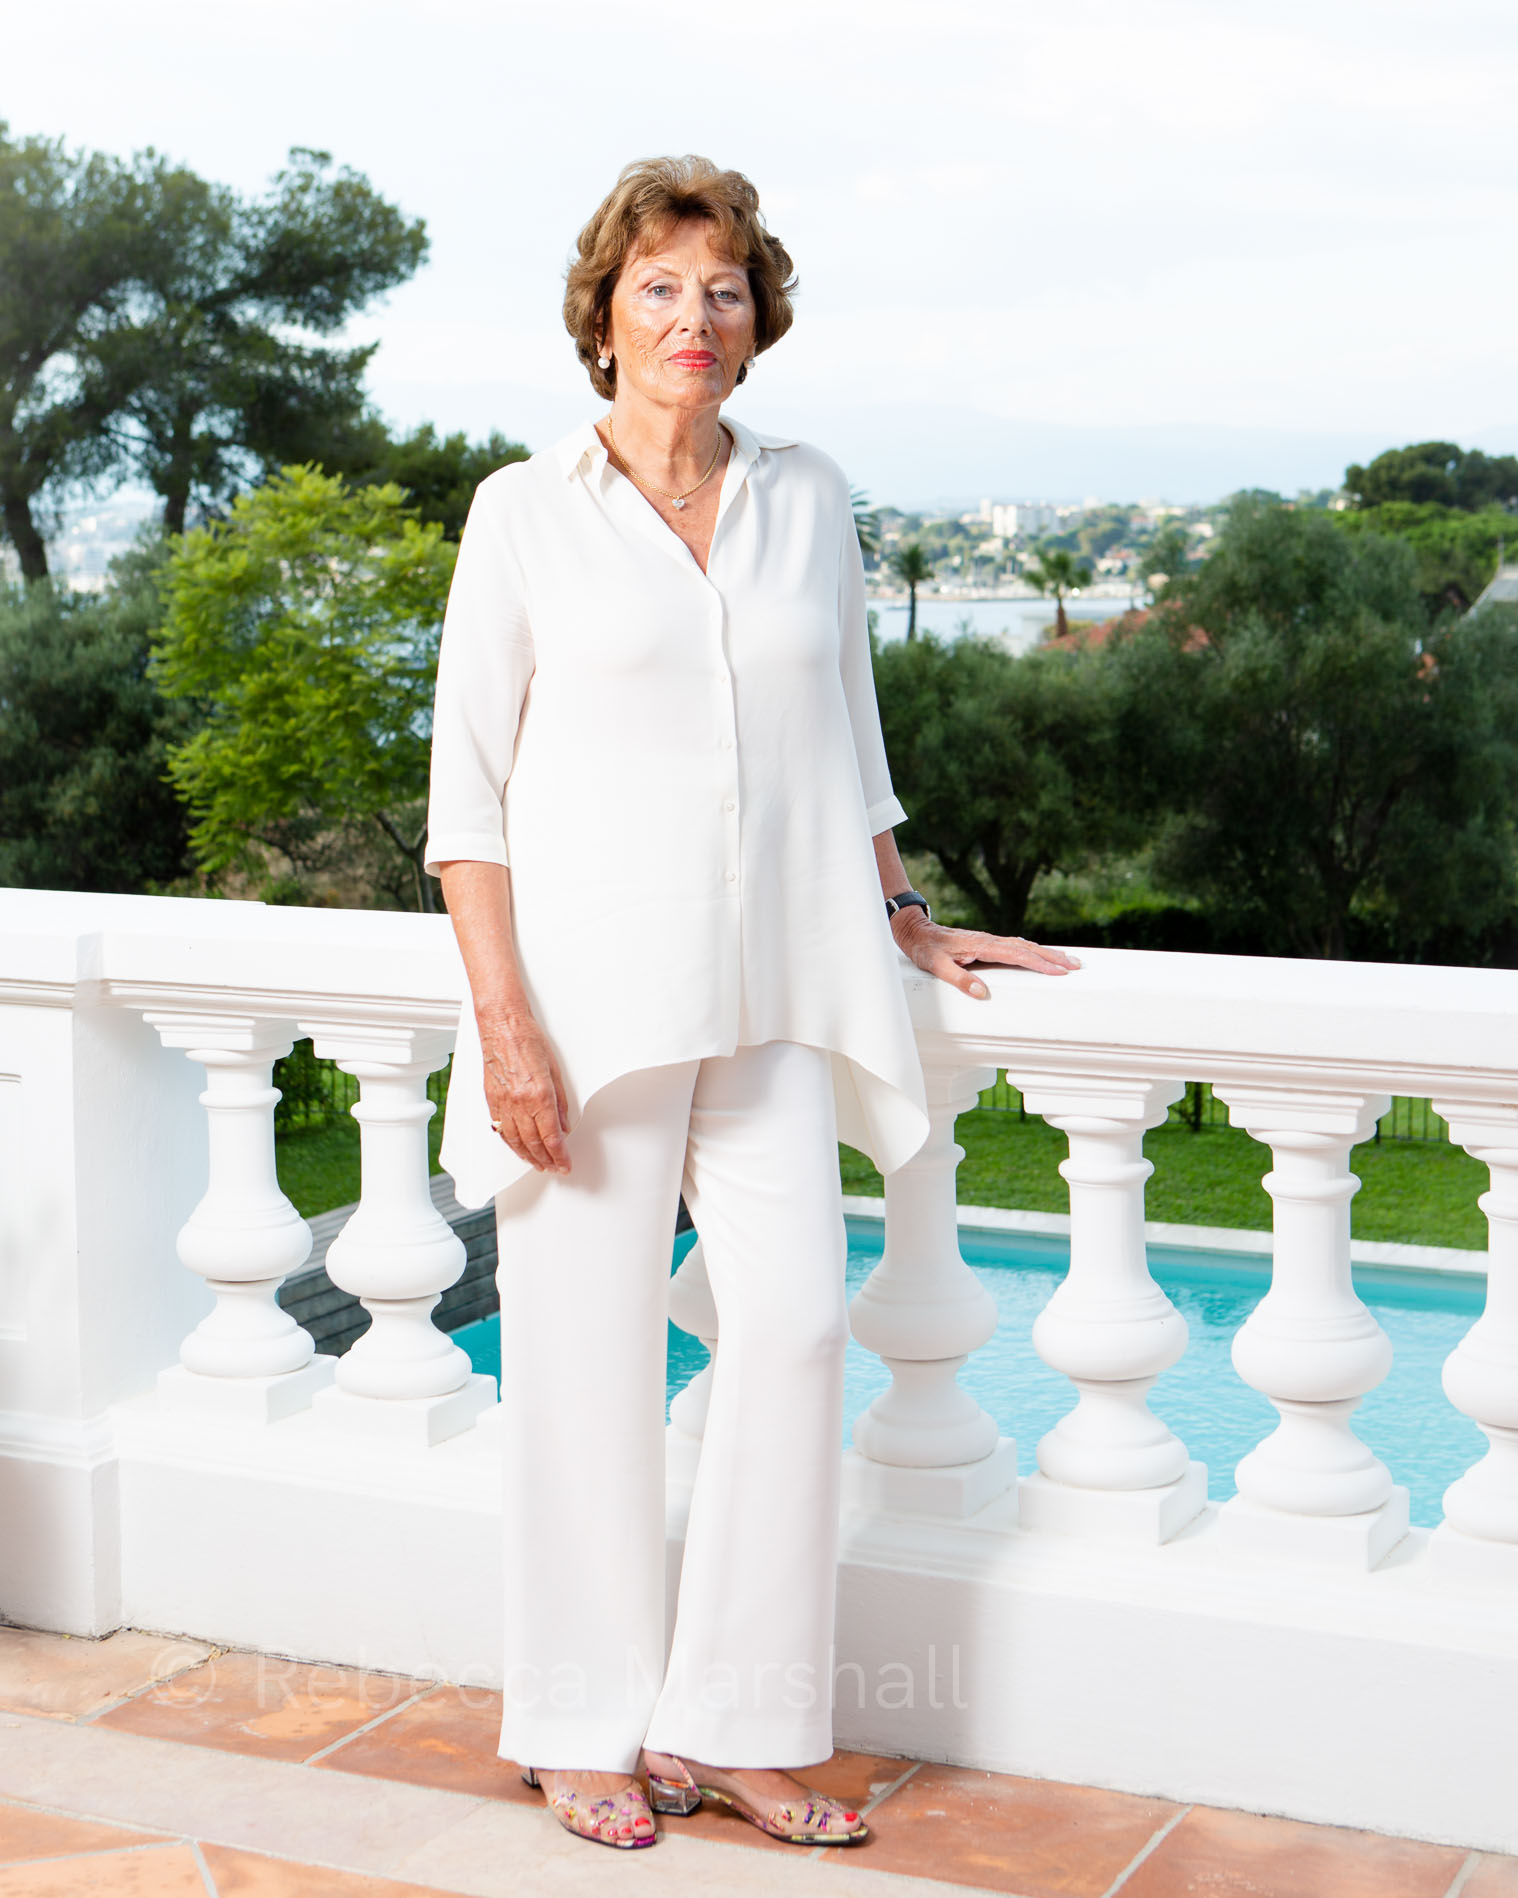 Full-length portrait of a woman in a white trouser suit standing on a terrace overlooking a swimming pool